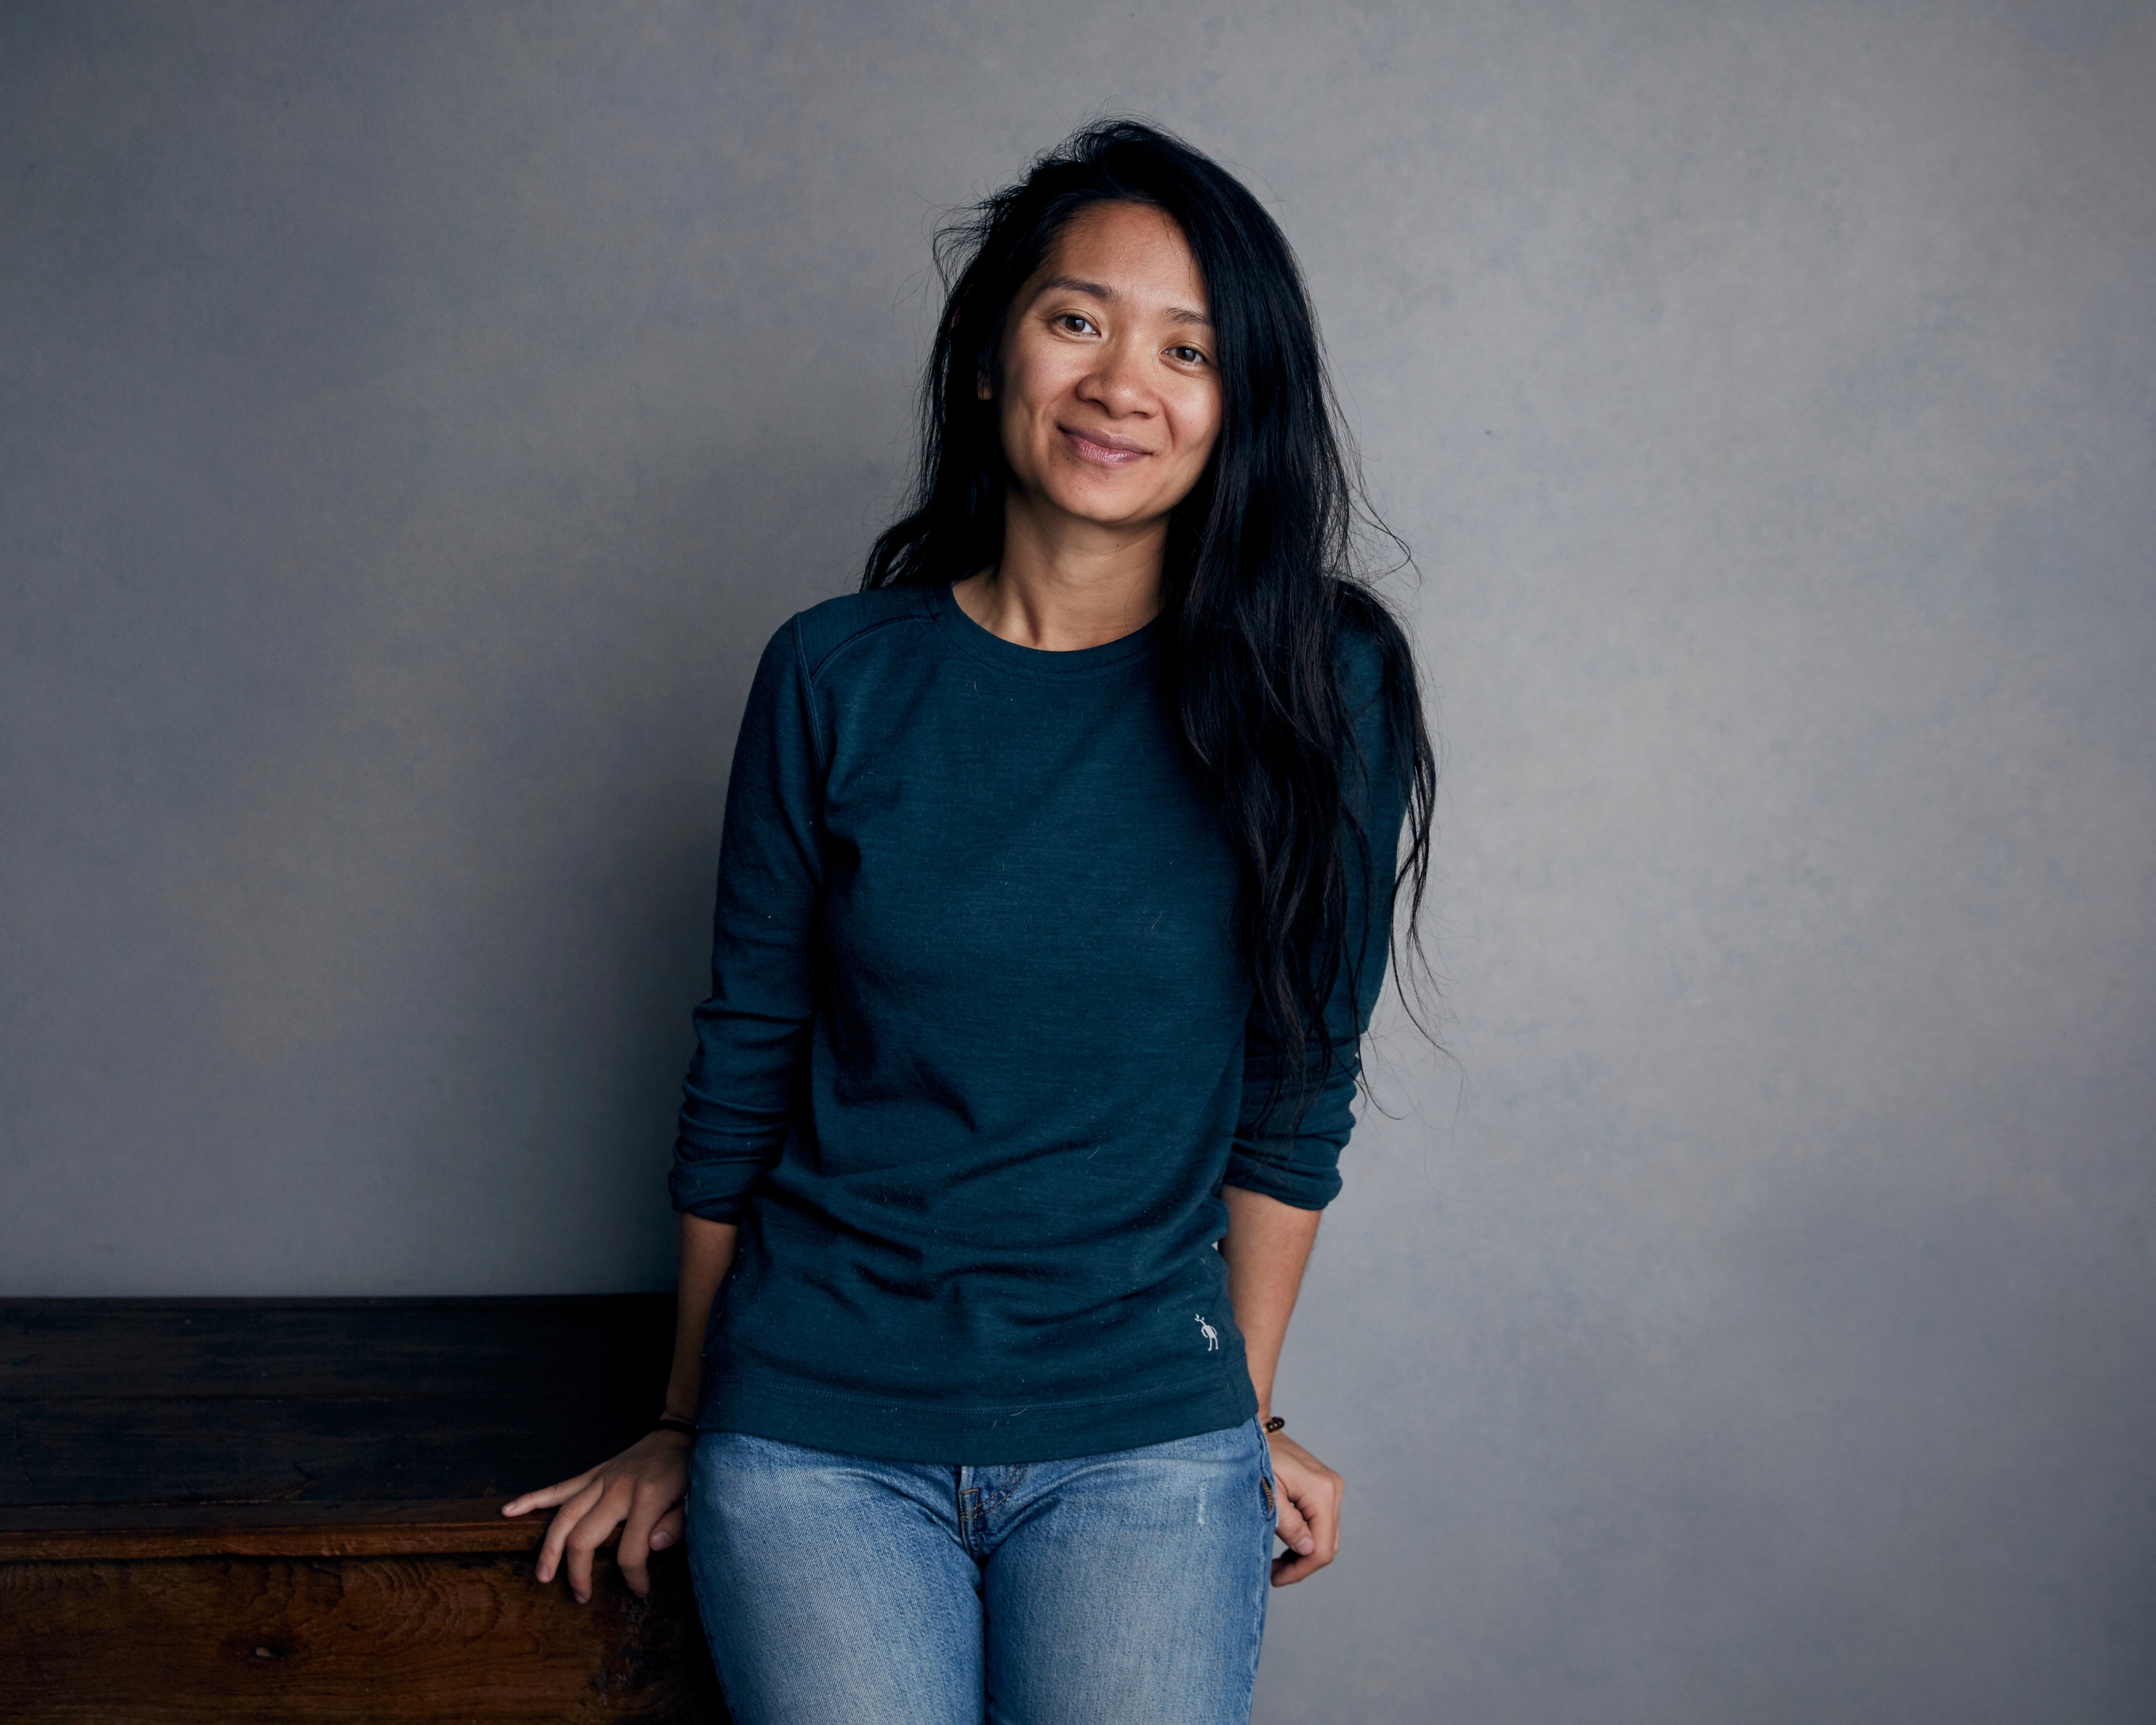 Chloe Zhao poses for a portrait to promote her film  Nomadland  during the Sundance Film Festival in Park City, Utah, on Jan. 22, 2018.